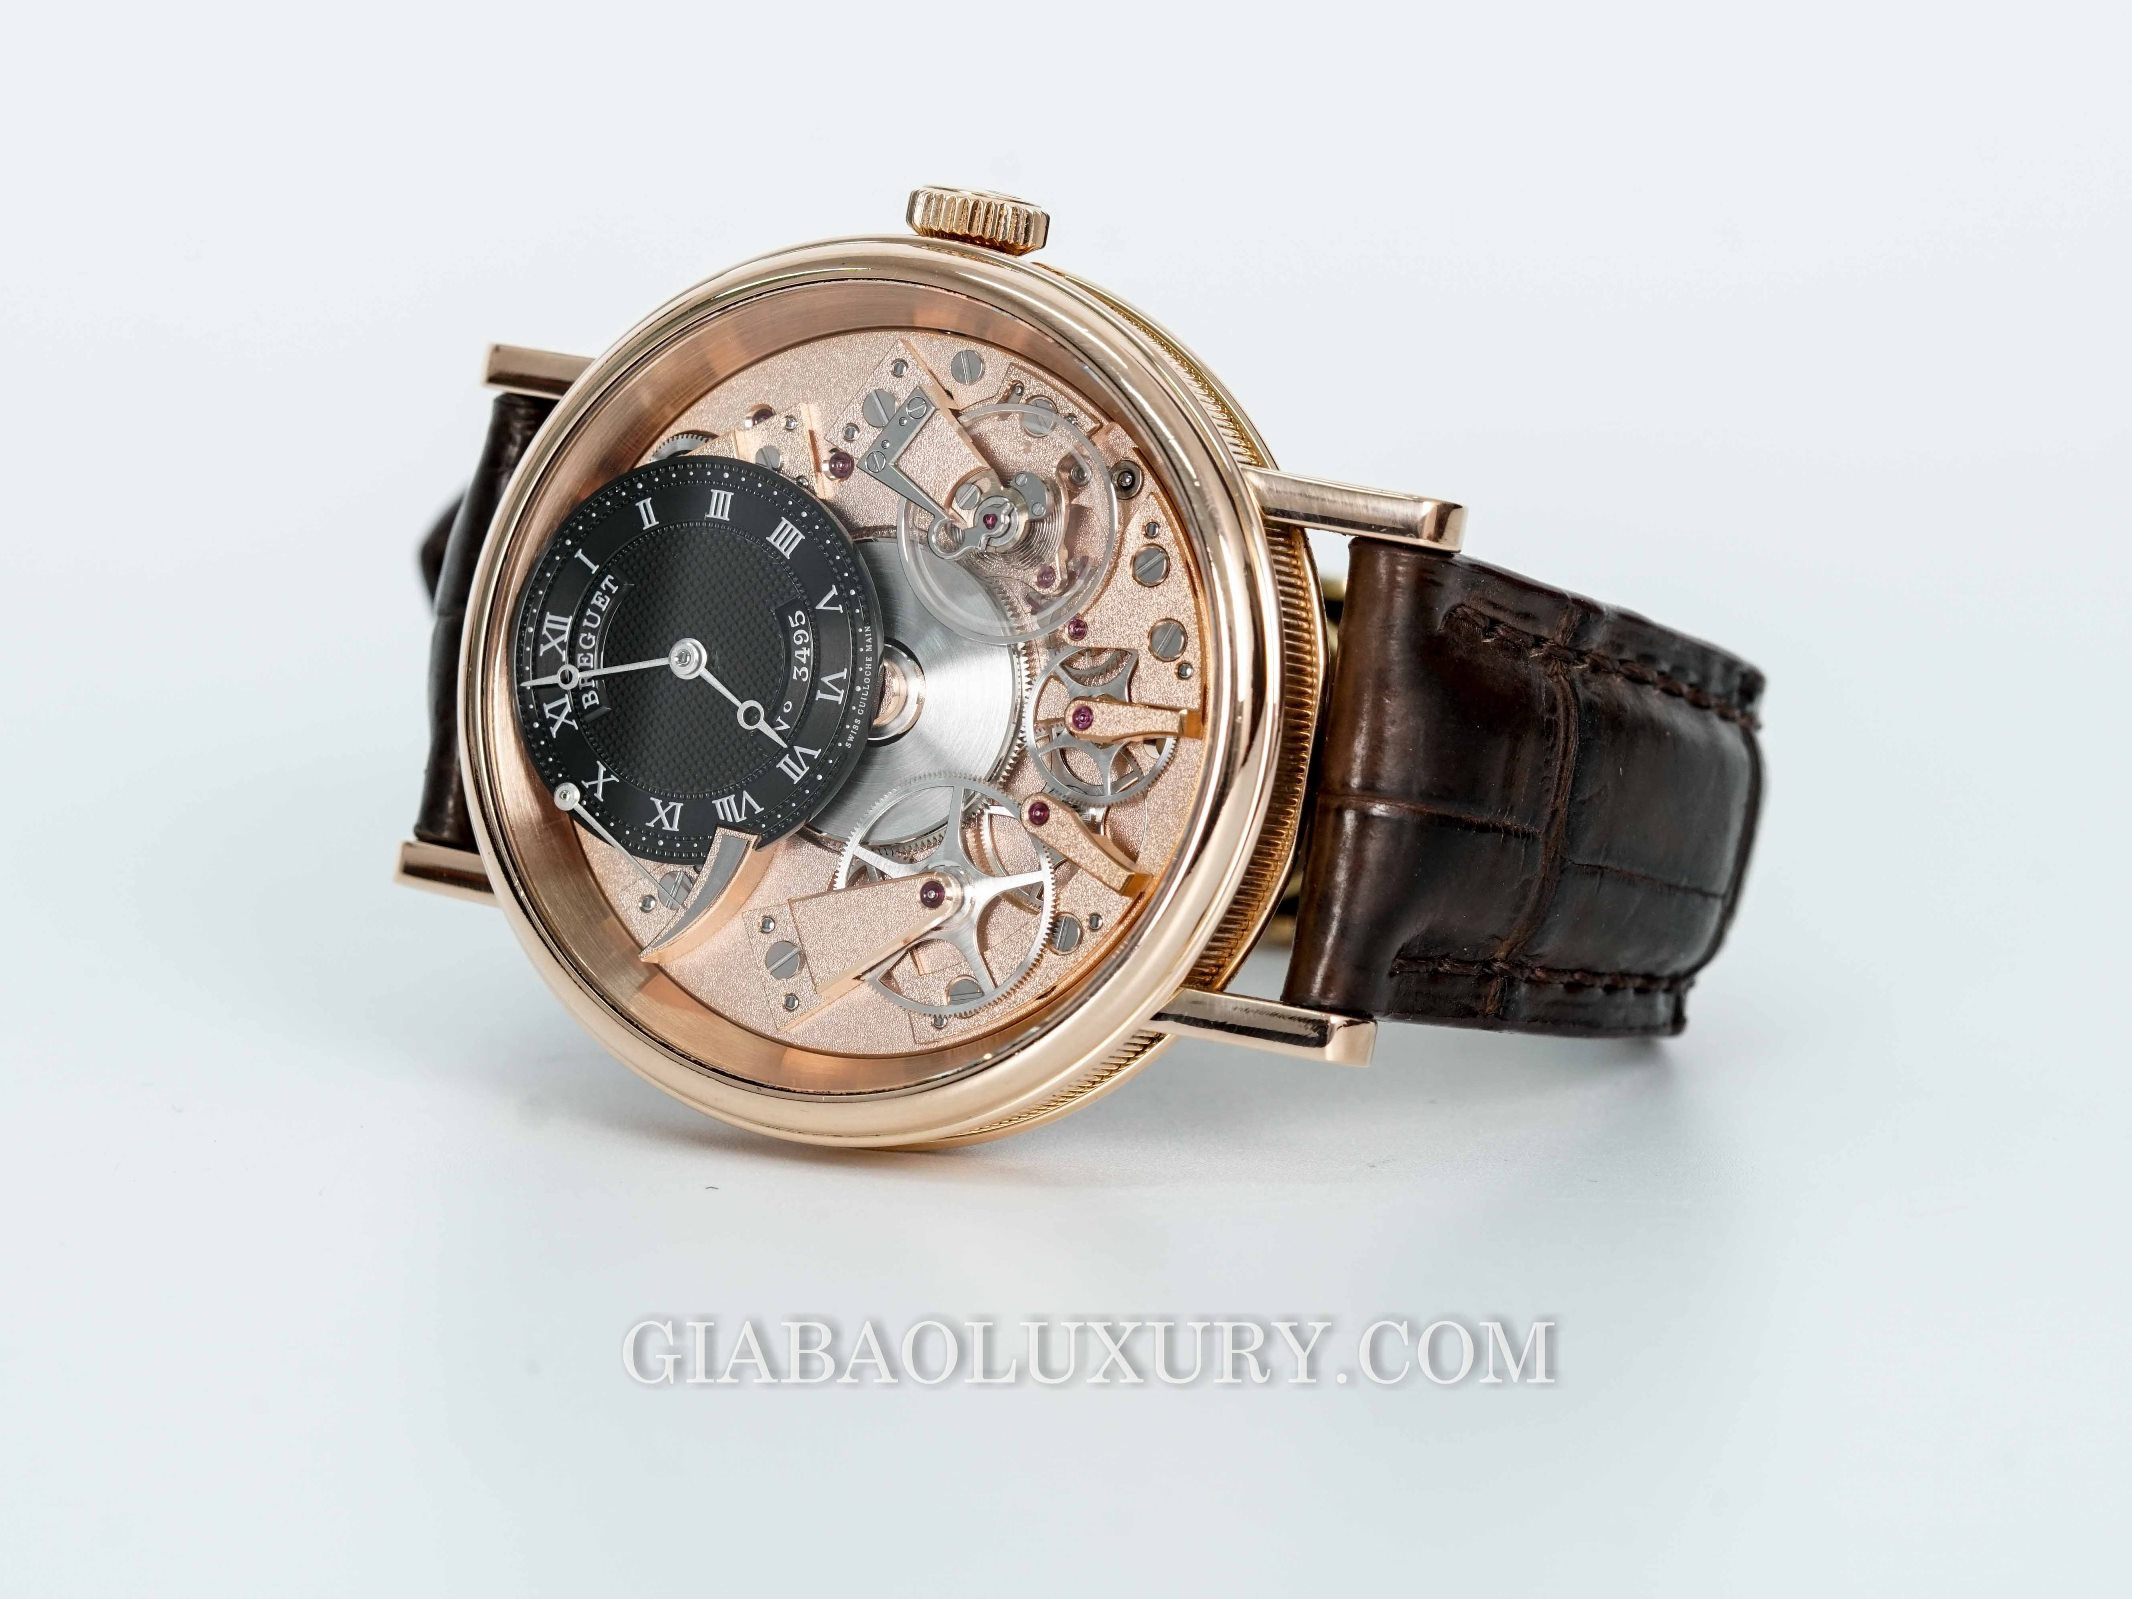 Đồng Hồ Breguet Tradition 7057BR/R9/9W6